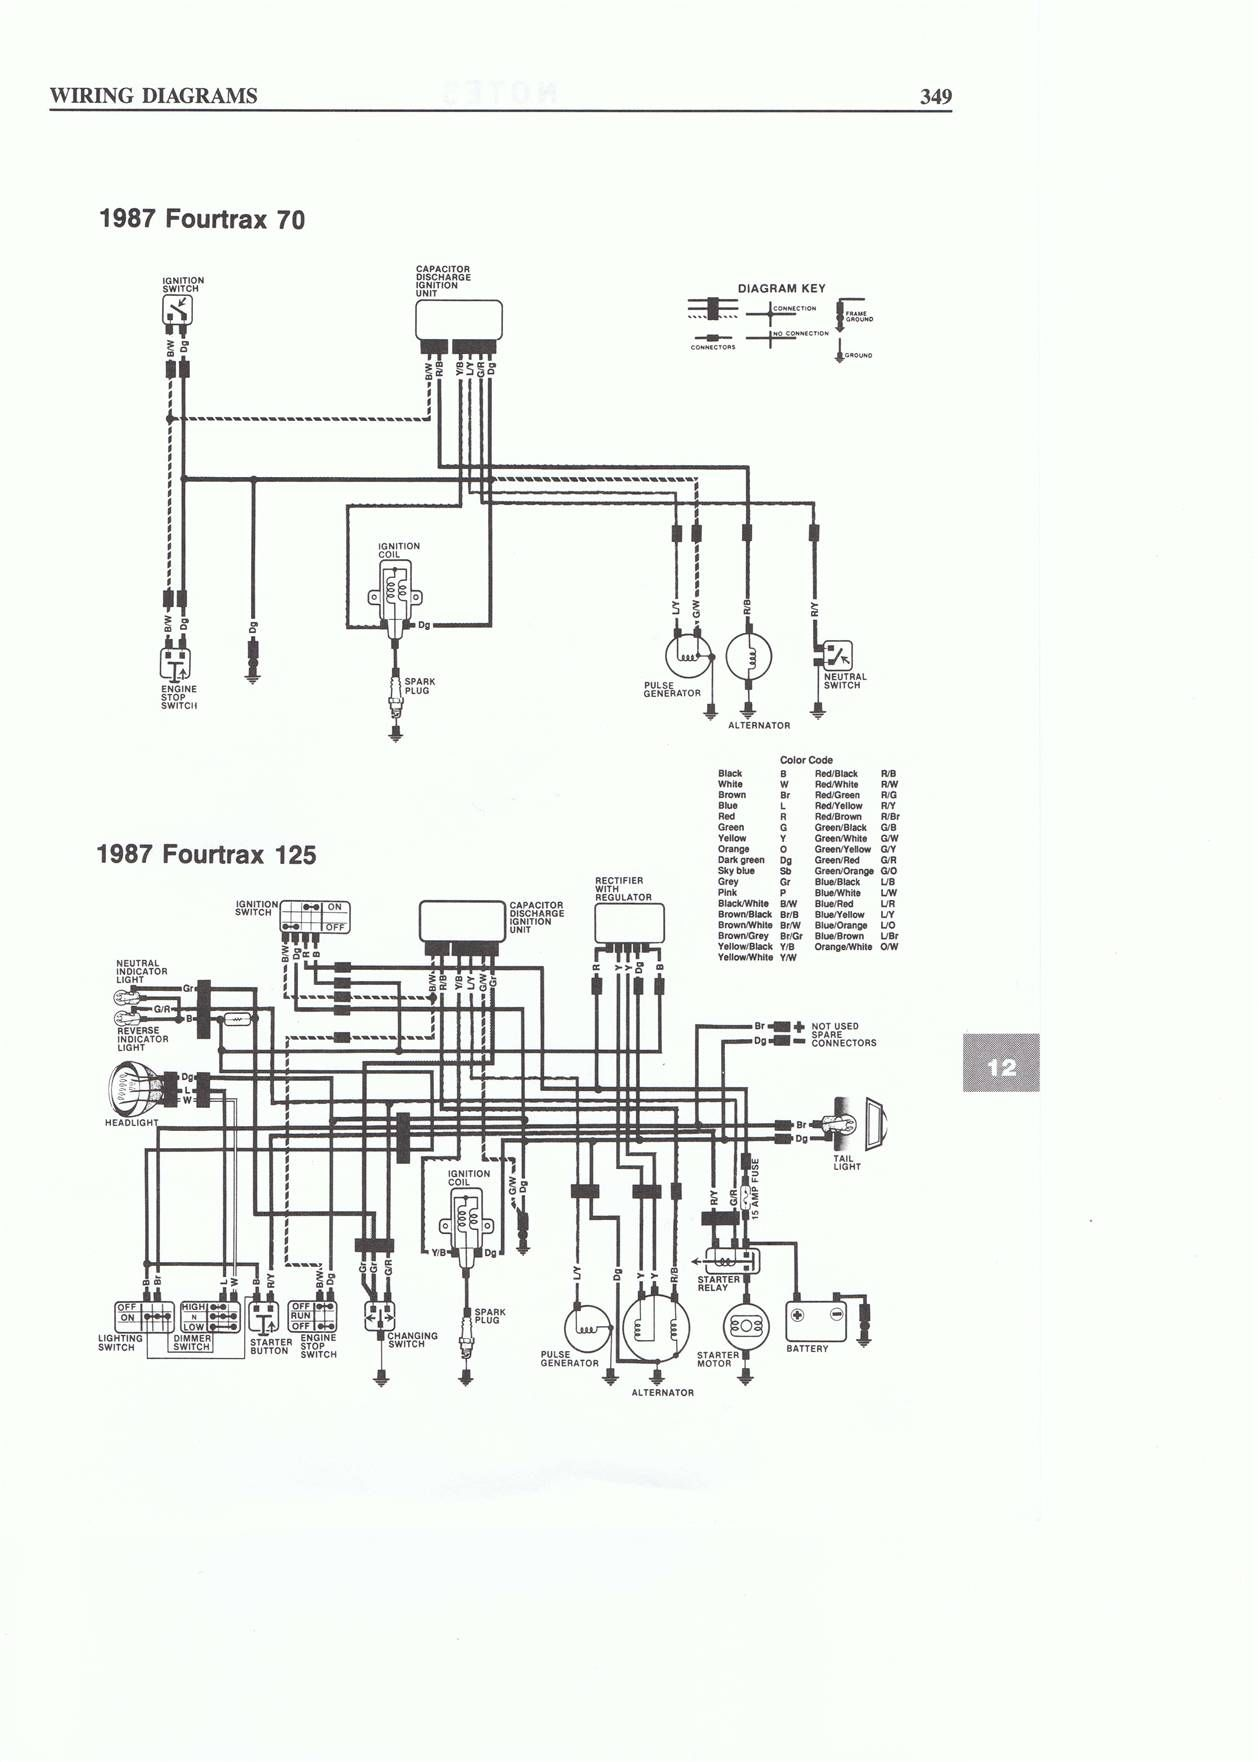 49cc gy6 scooter wiring diagram free download wiring diagram xwiaw 49cc 2 stroke engine diagram free download wiring diagram gy6 engine wiring diagram diy and crafts pinterest engine of 49cc